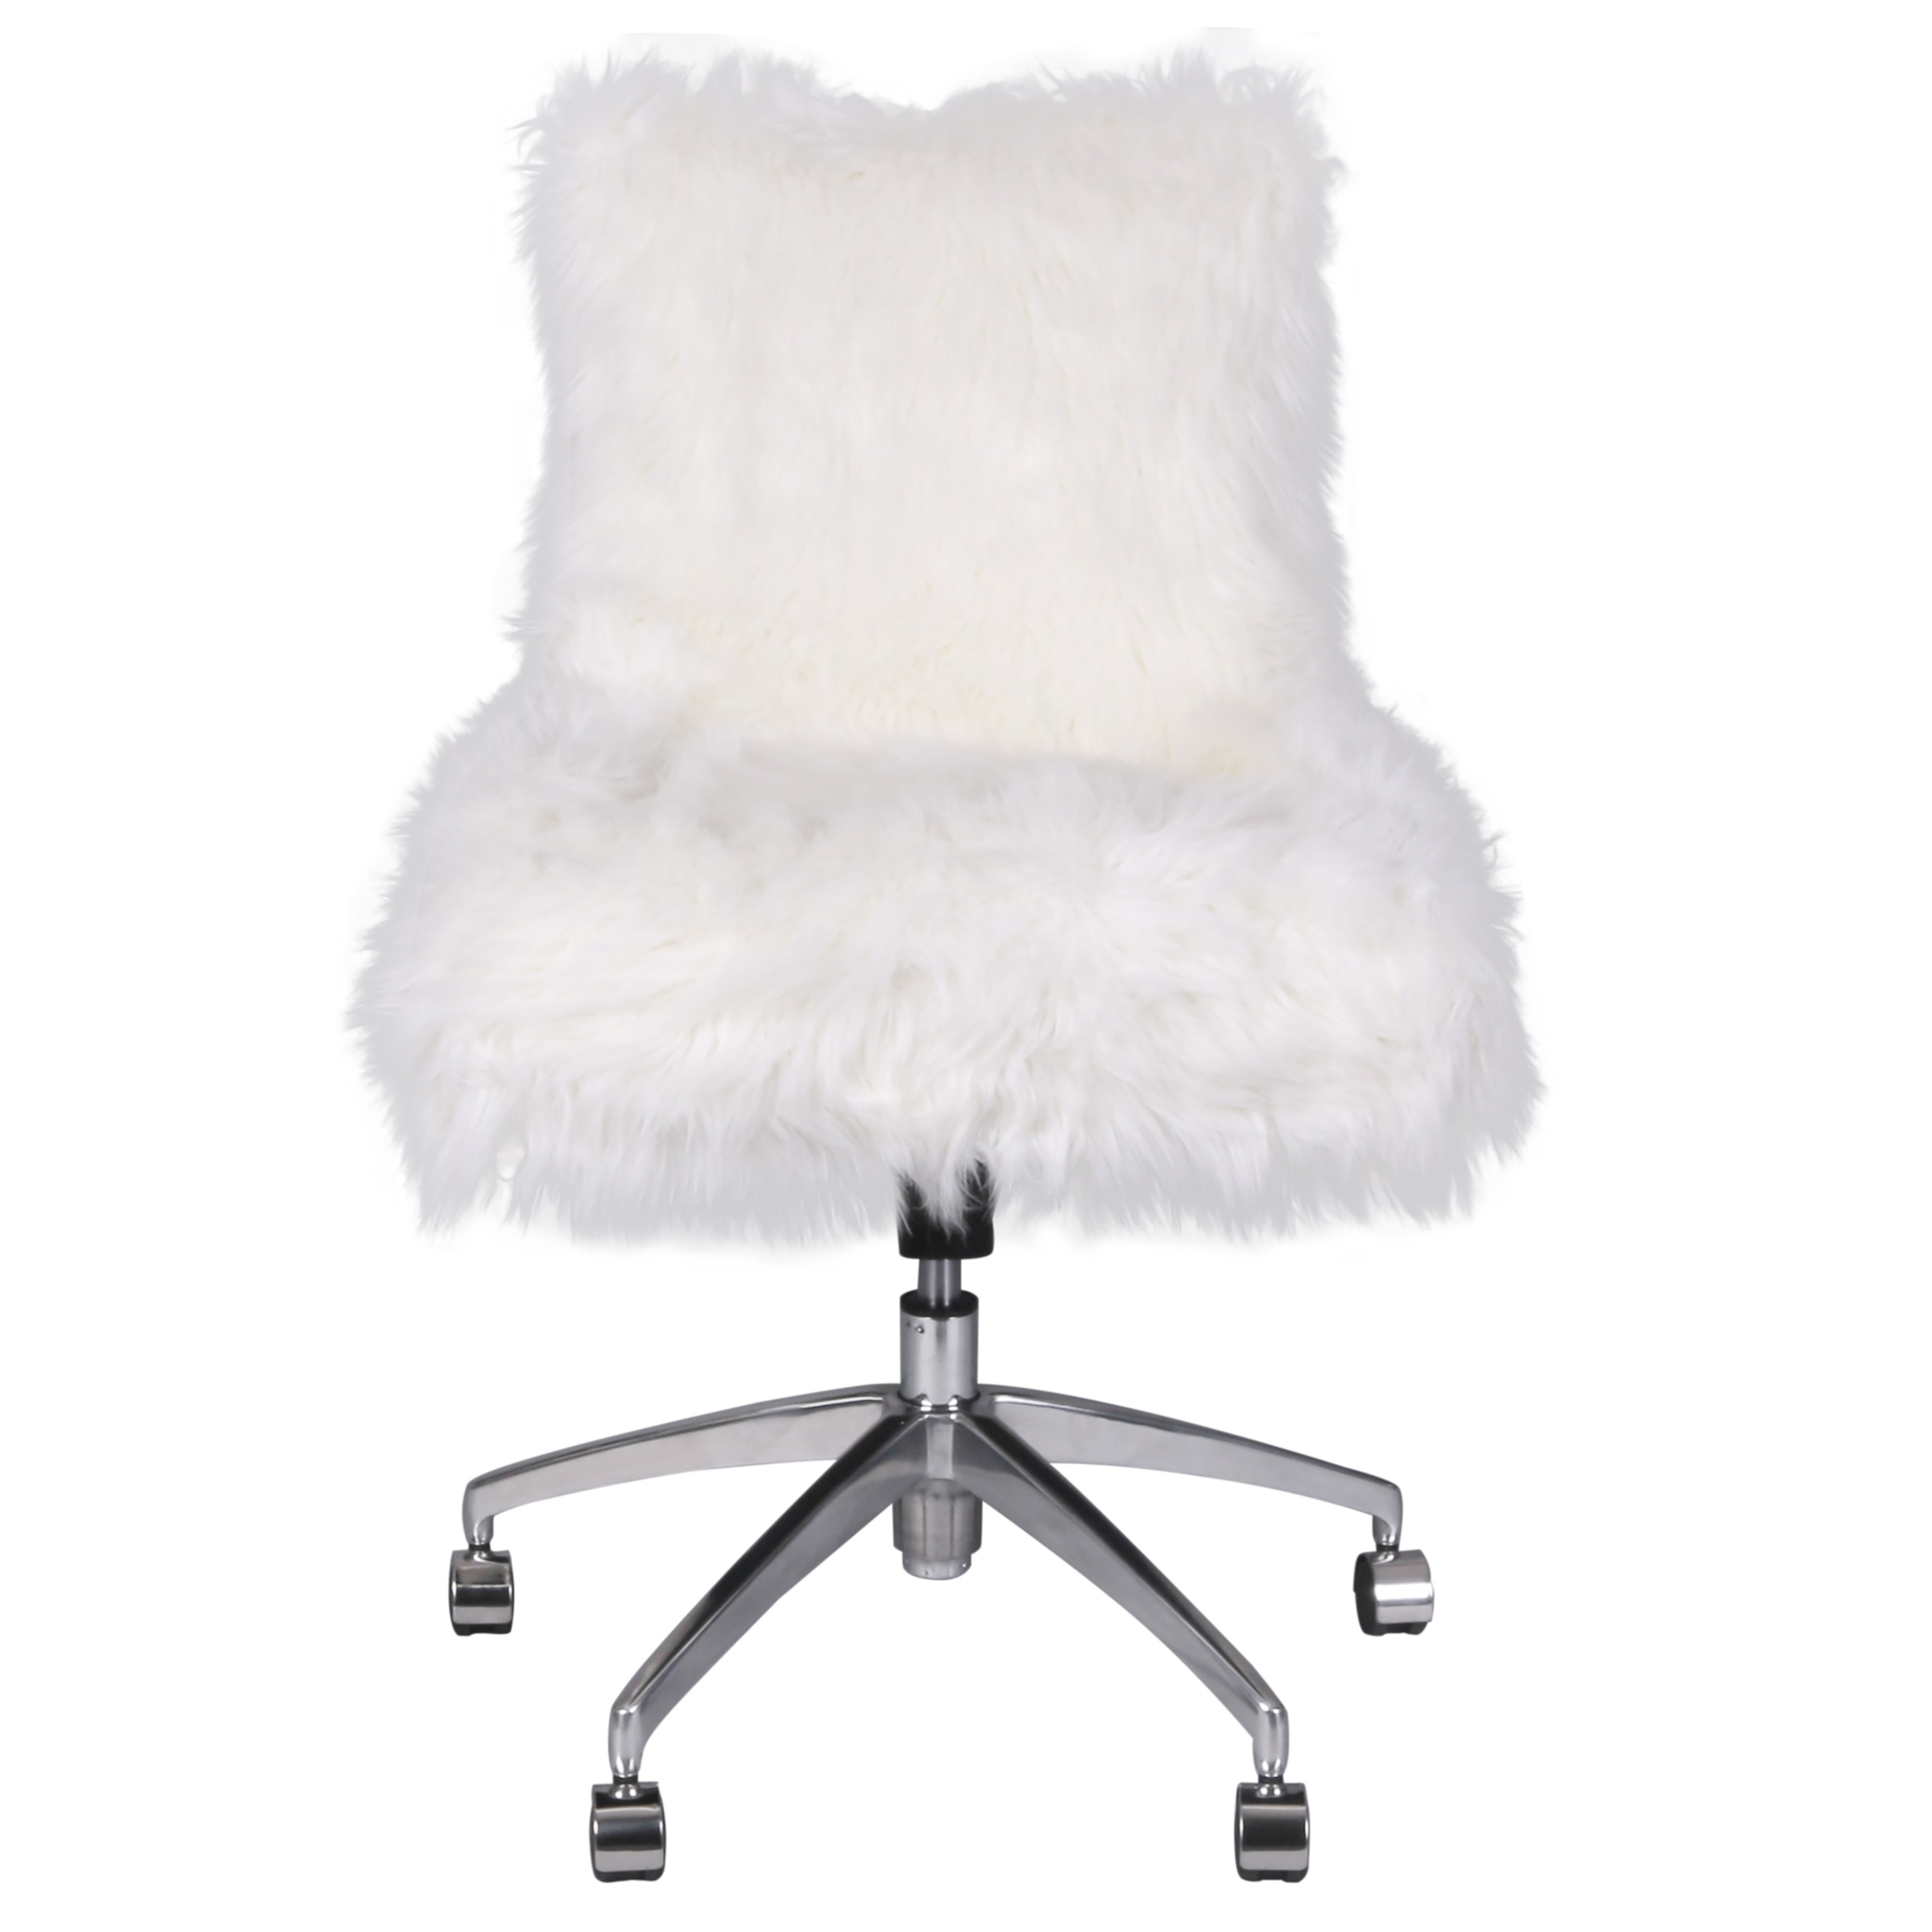 faux fur chair cover glider or rocking for baby 3500063 npd furniture stylish and affordable lifestyle